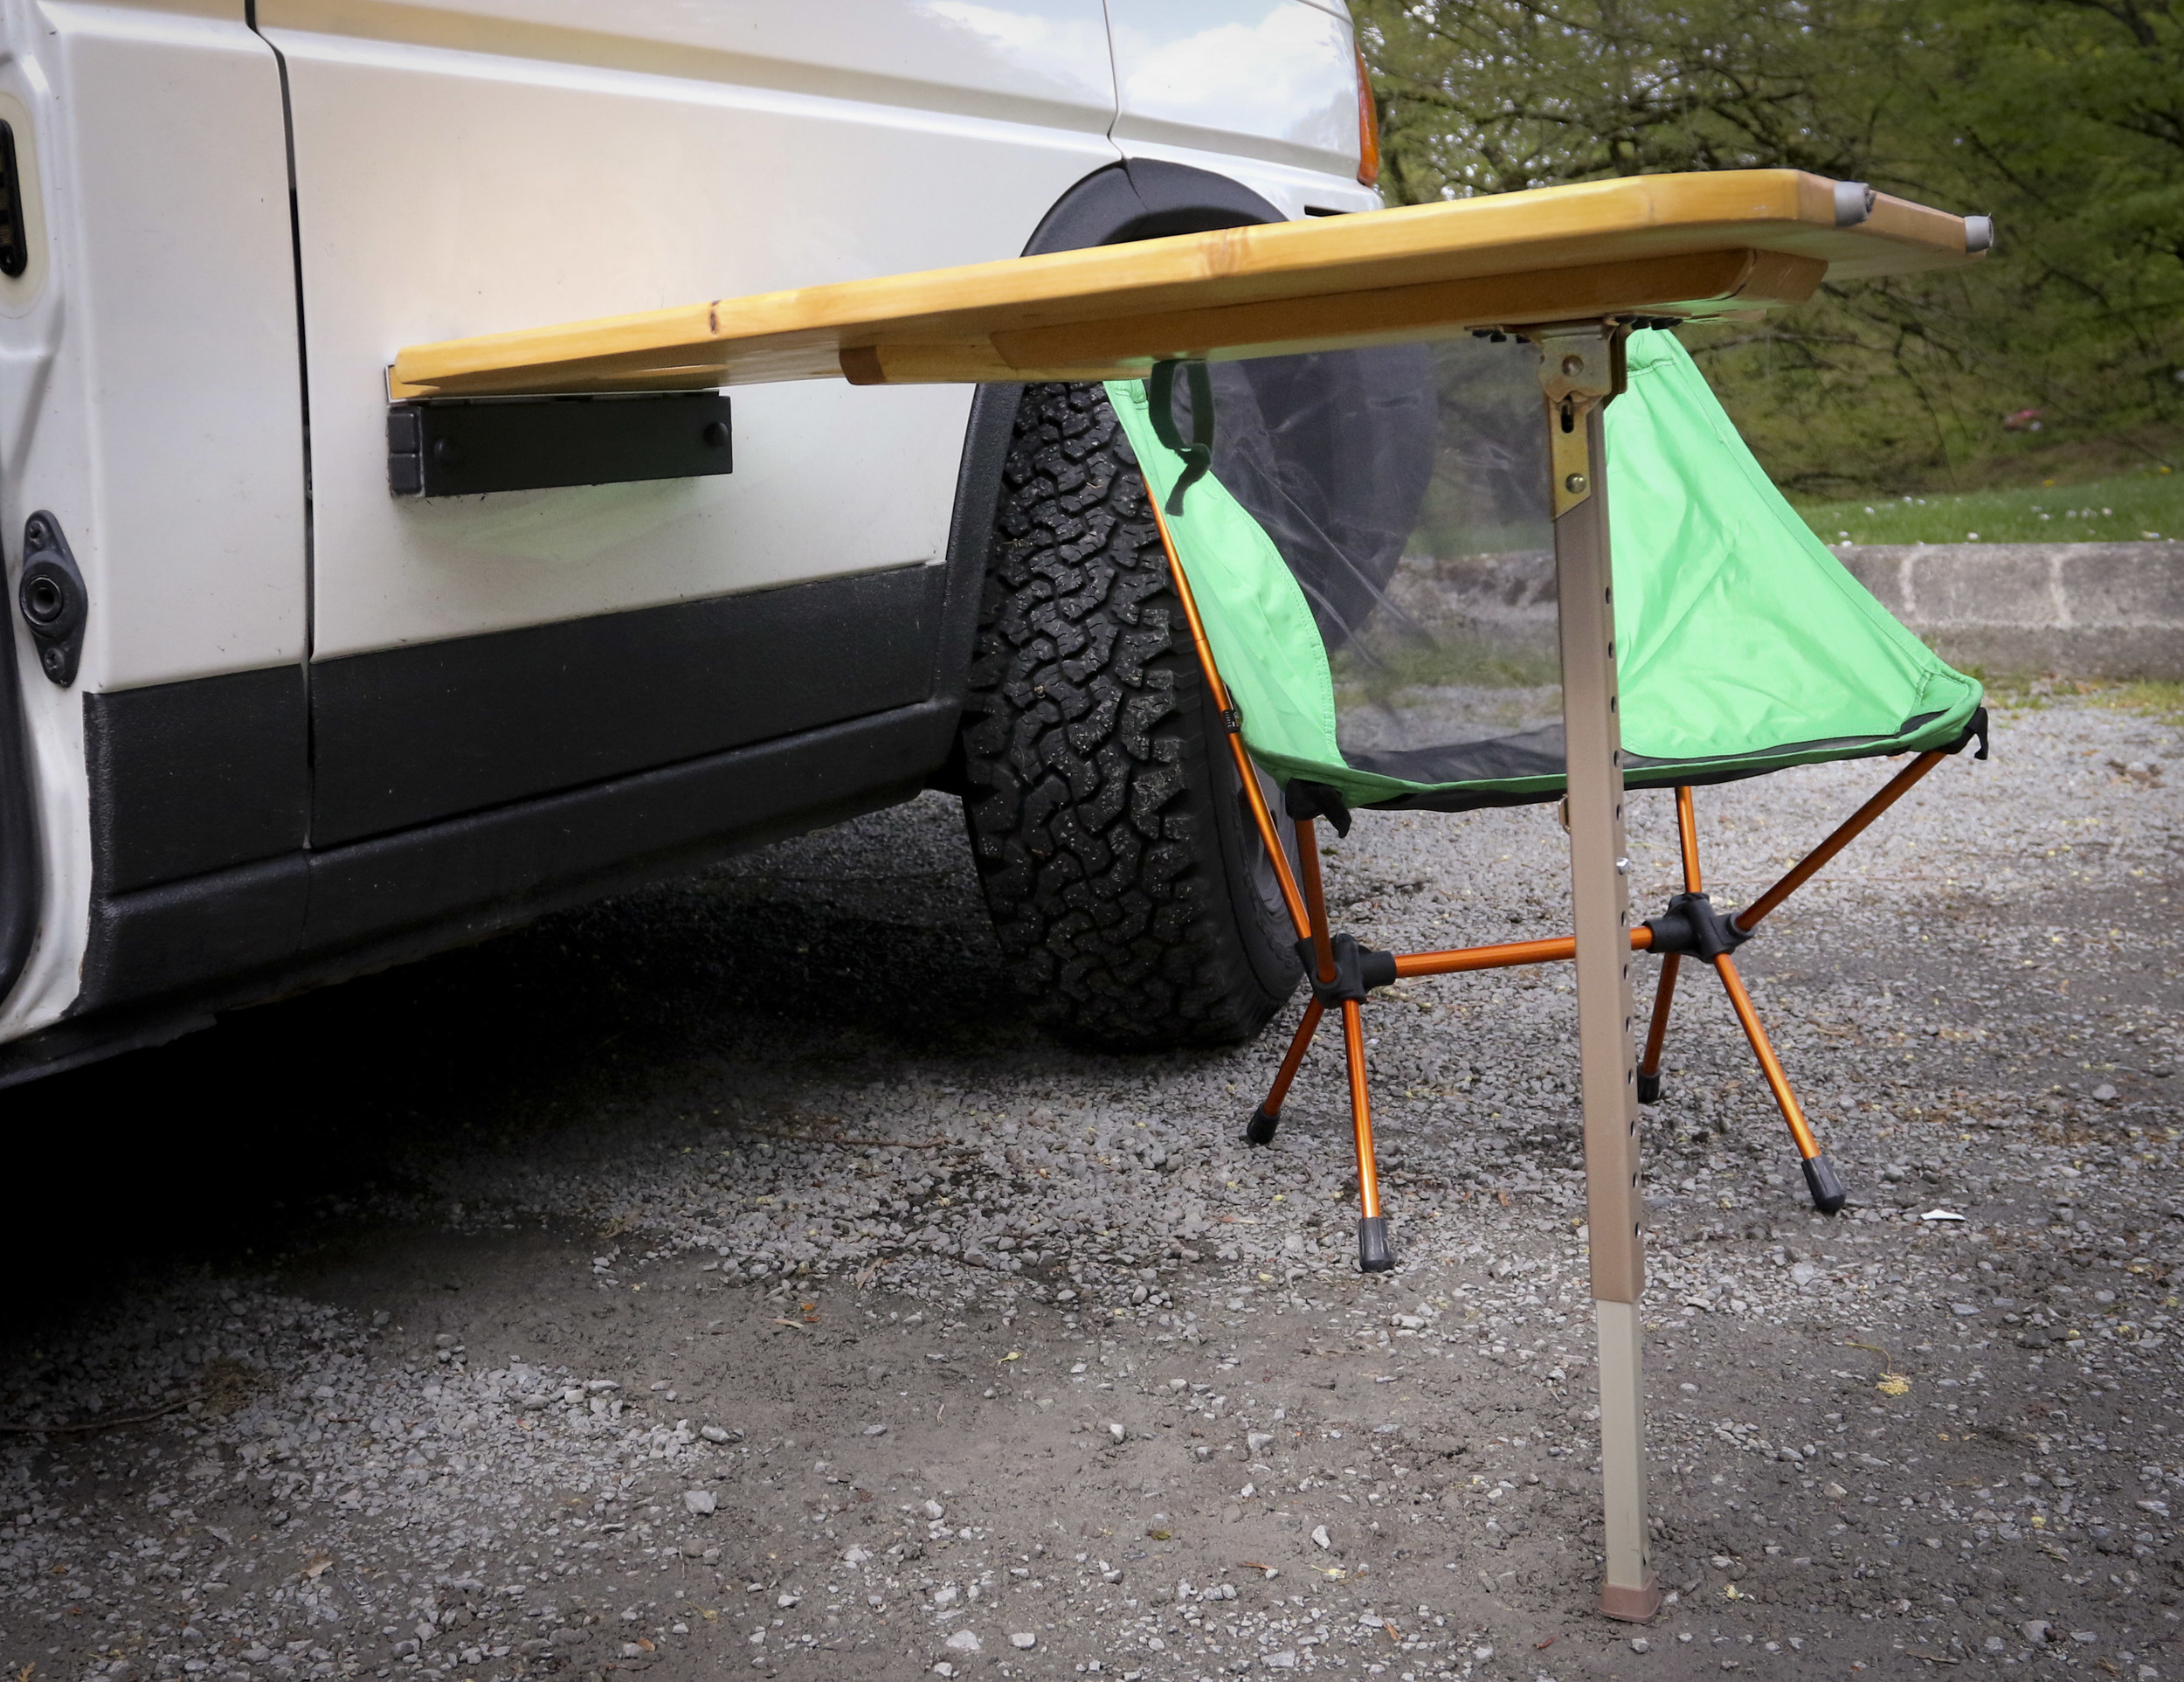 Exterior Mounted Pine Table  The table is held up by an adjustable folding leg made by Heaffle.